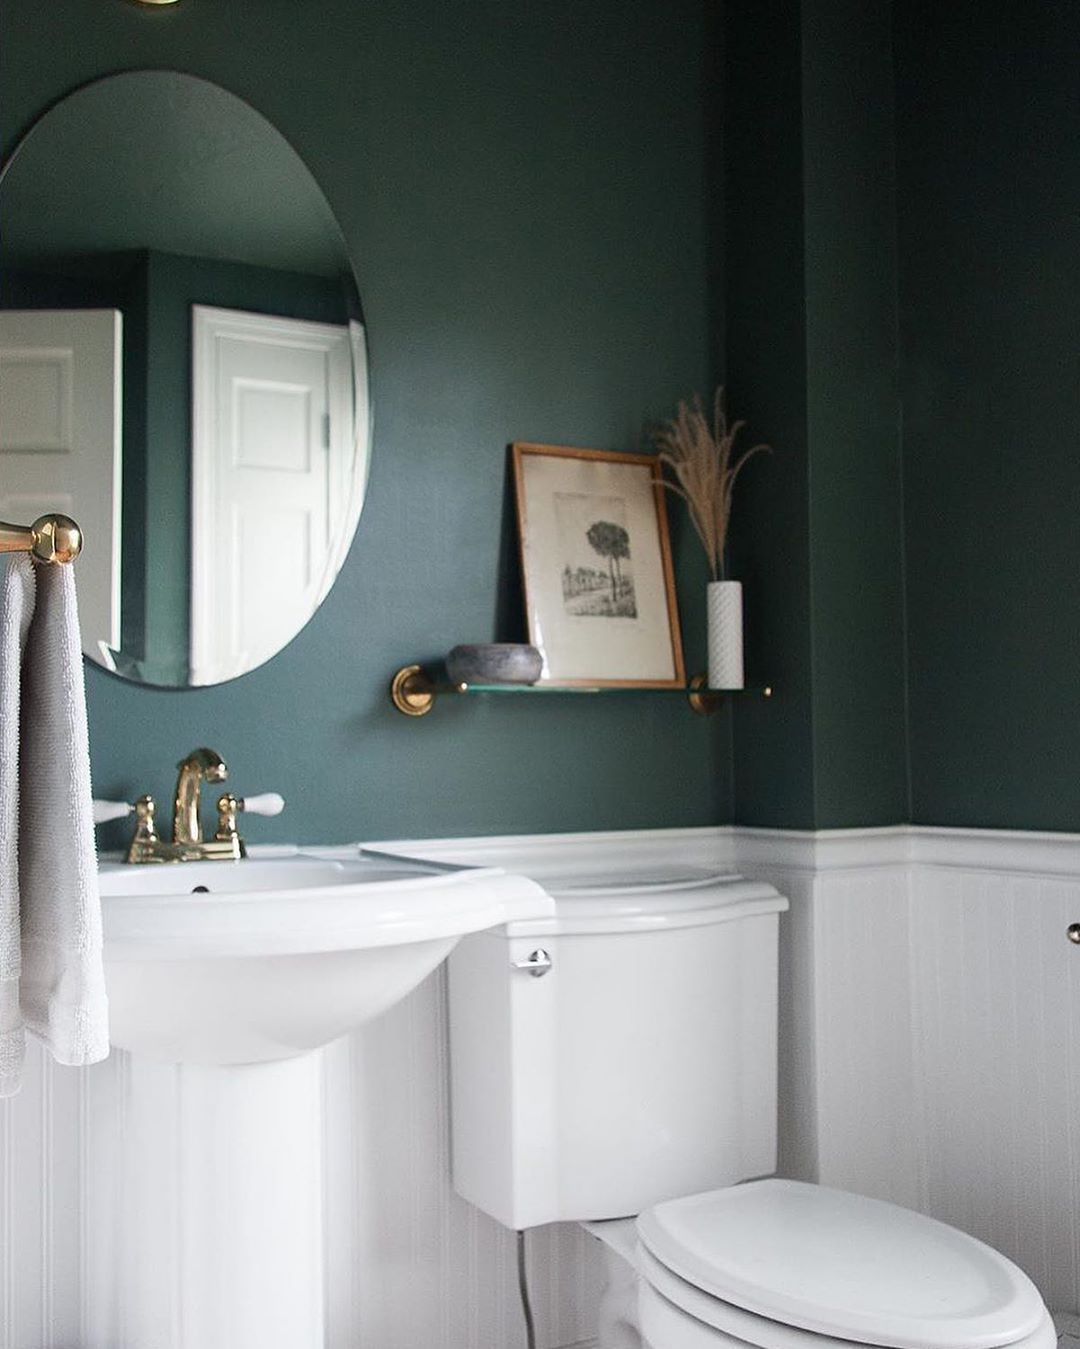 Bring On The Drama With This Popular Green Hue In 2020 Small Apartment Bathroom Green Bathroom Best Bathroom Paint Colors